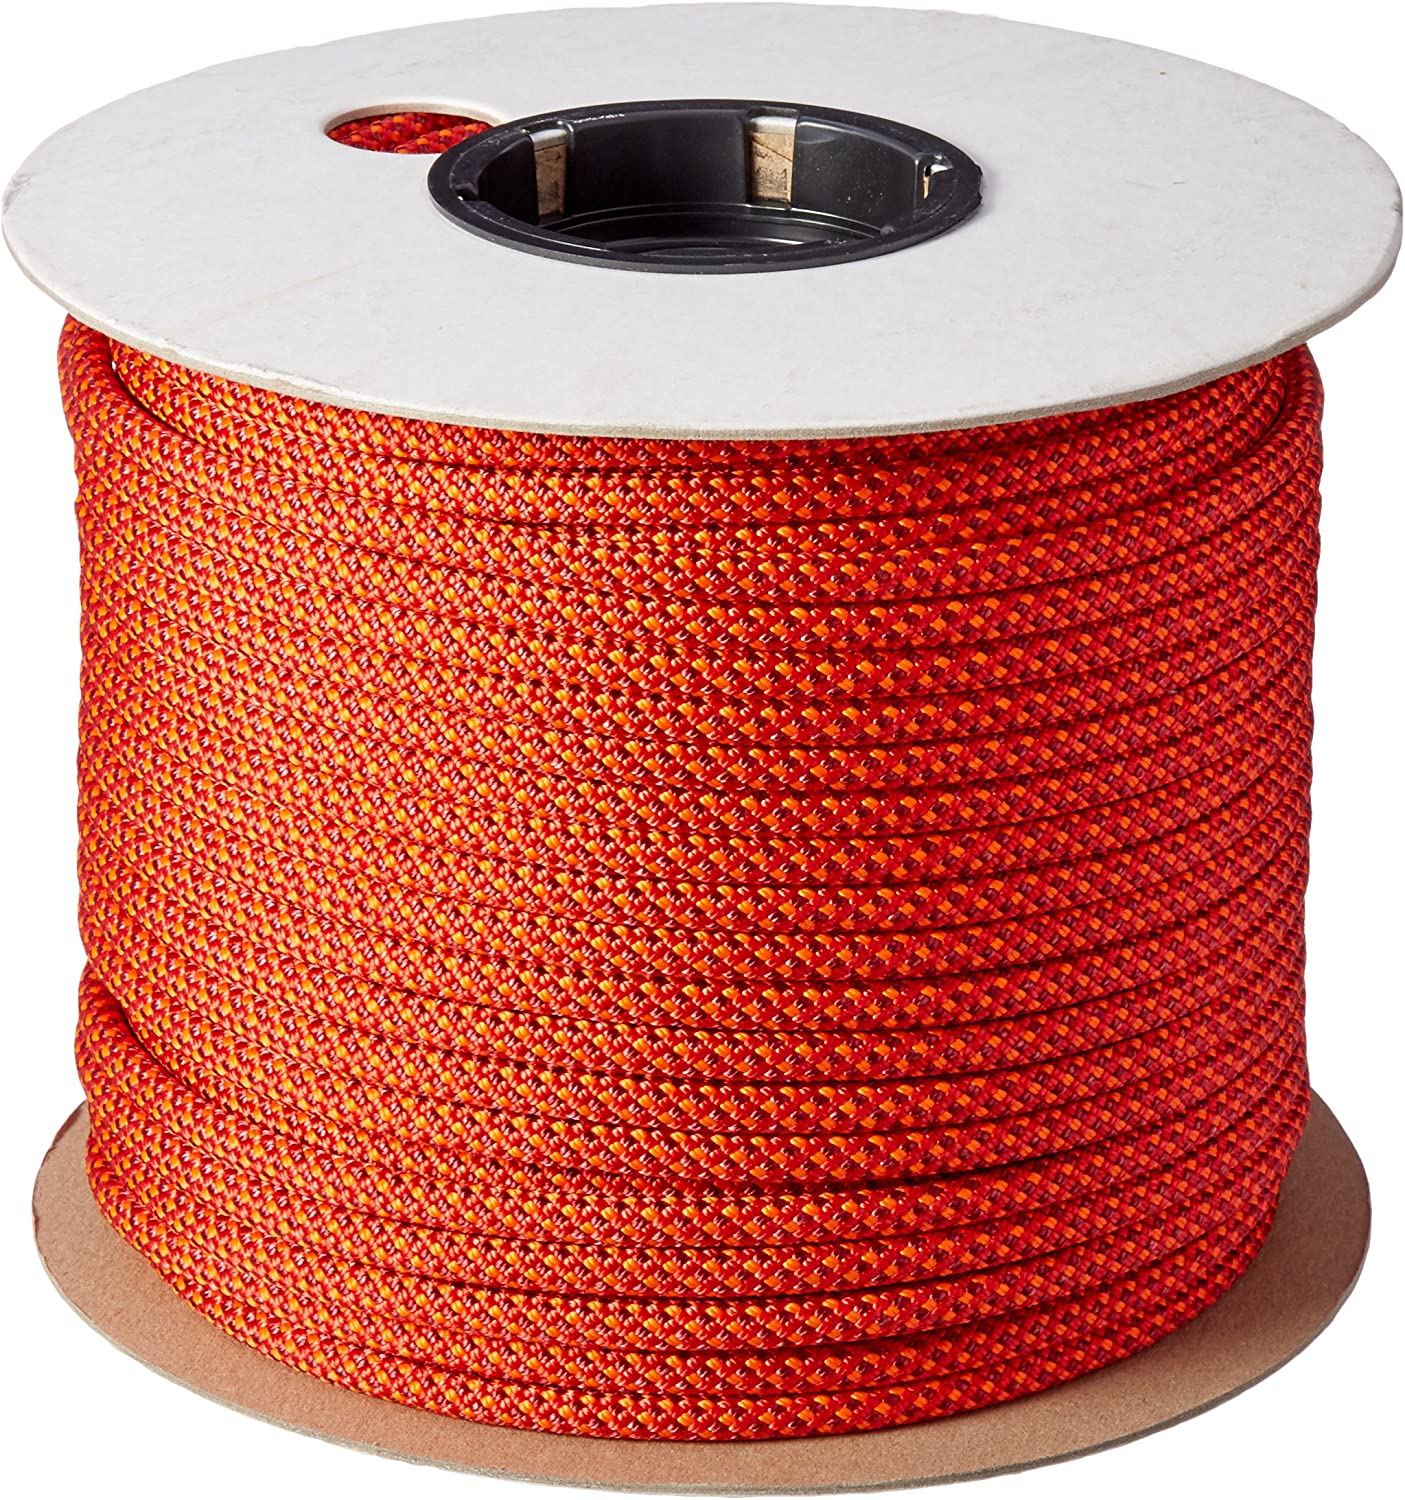 ABC Accessory Cord : Climbing Utility Cord : Sports & Outdoors